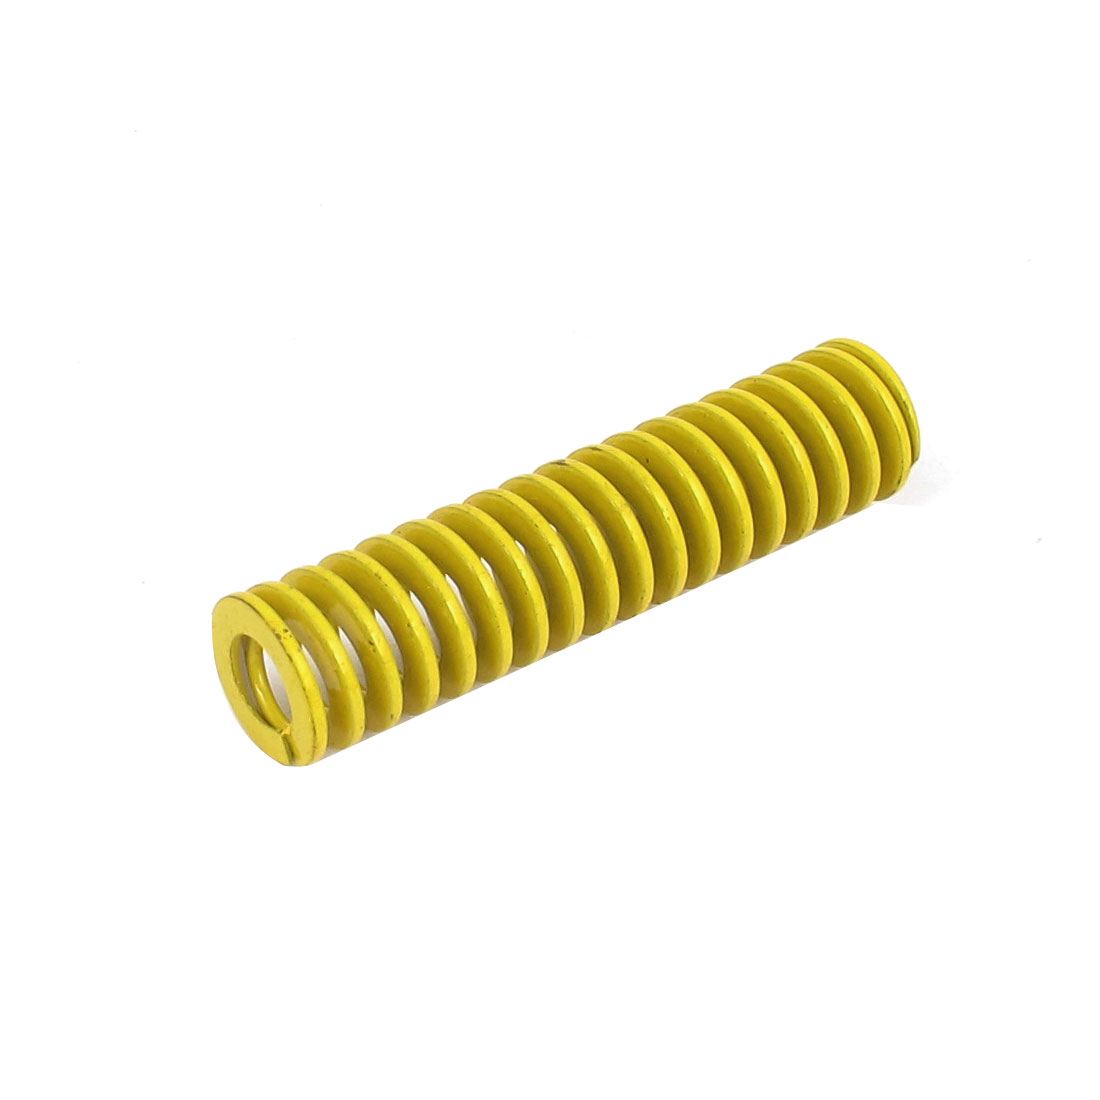 12mm OD 50mm Long Lightest Load Spiral Stamping Compression Die Spring Yellow